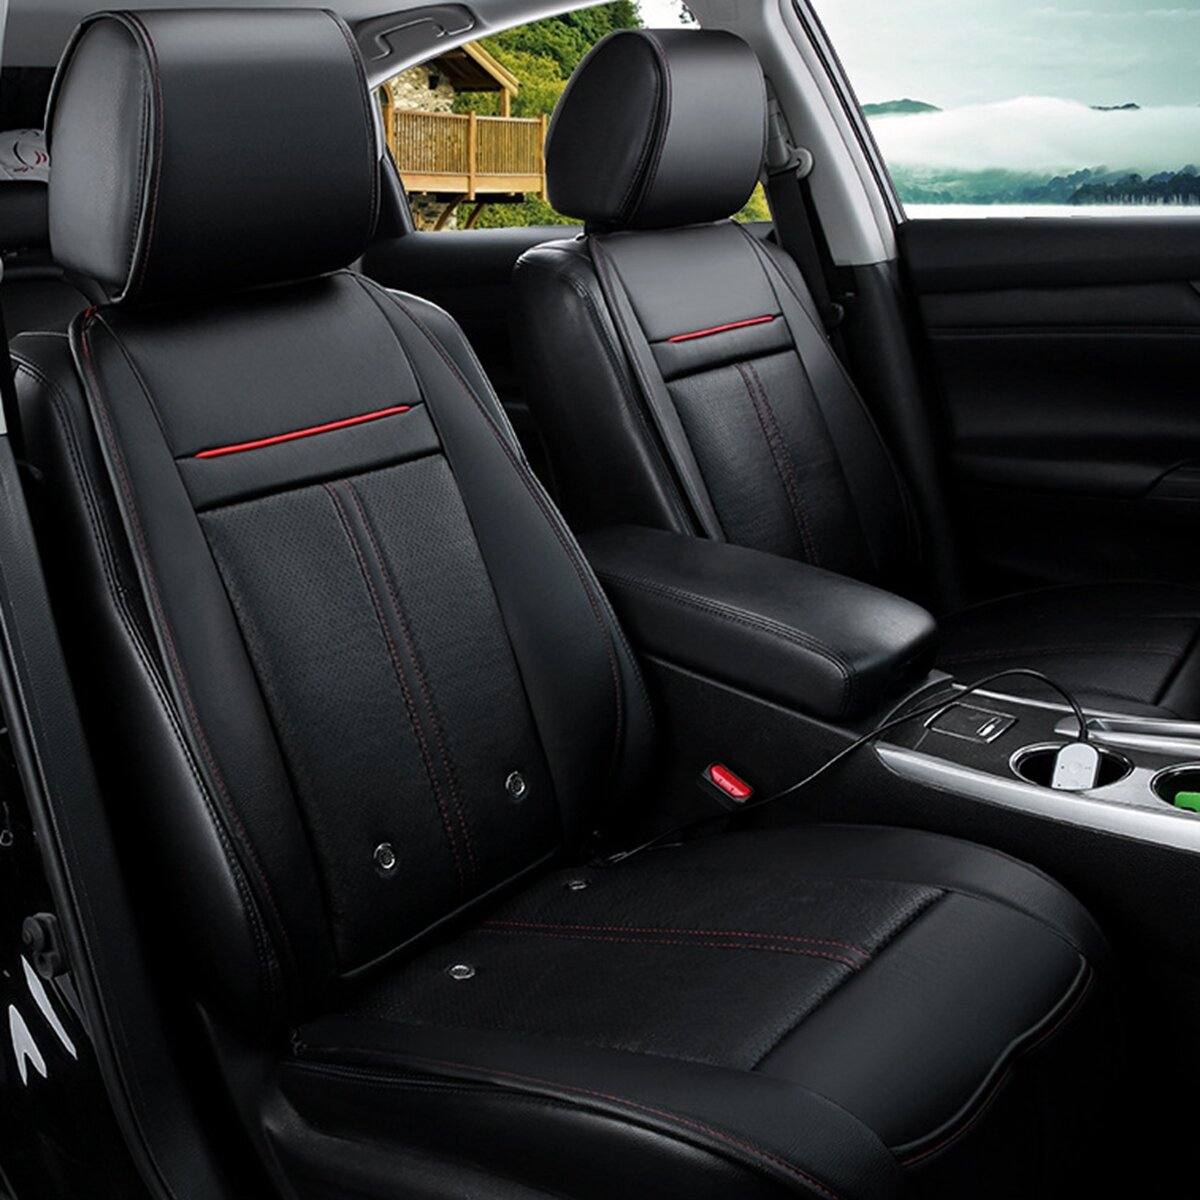 3 In 1 Leather Car Cooling Warm Heated Massage Seat Cushion Cover with 8 Fan Universal